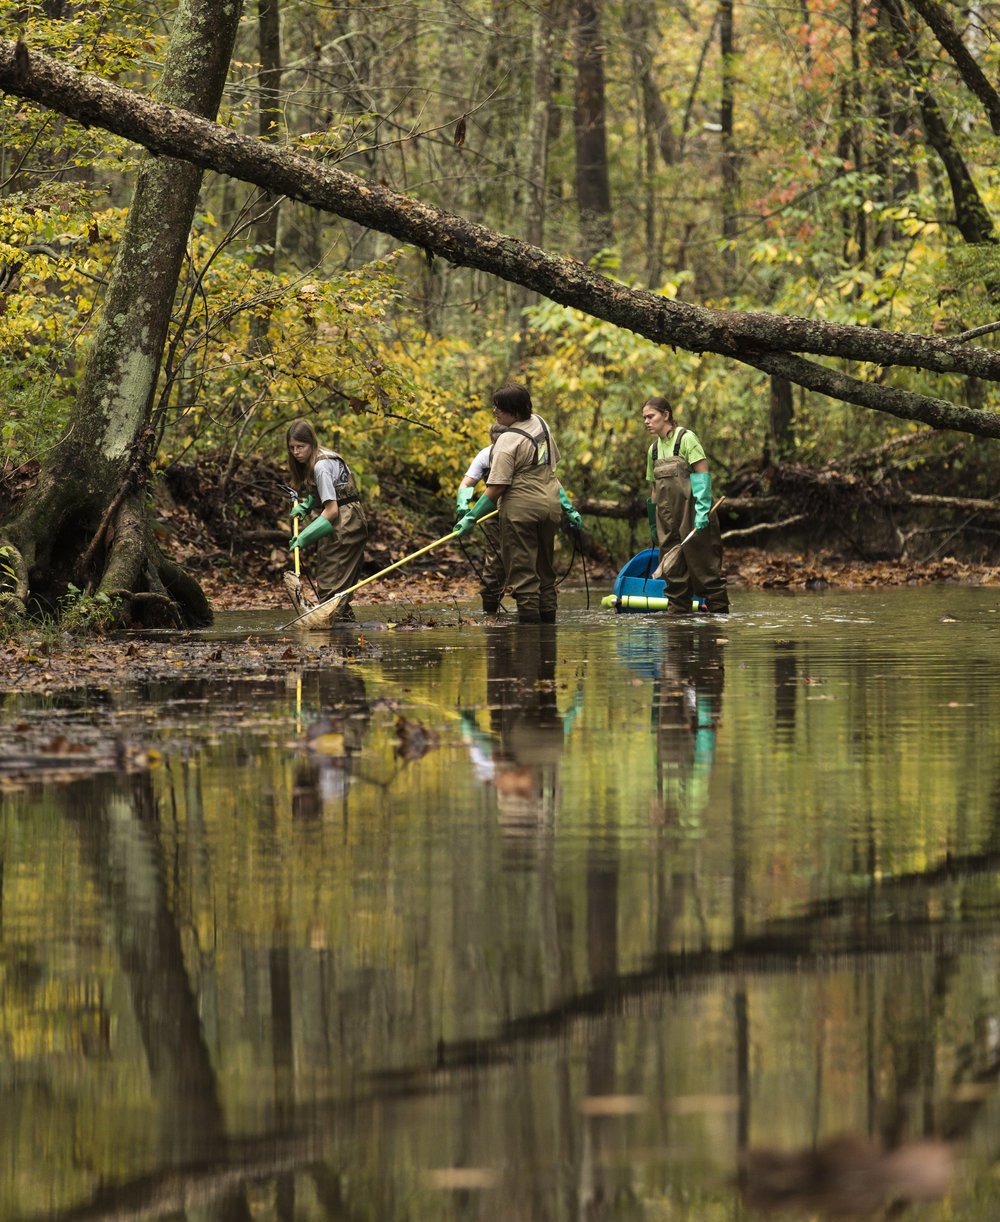 Amy Mackey, left to right, Brooke Stokes, Abby Costilow, and Emily Keil-Loudner perform a fish sampling in Sandy Run Creek in McArthur, Ohio, on October 9, 2017.